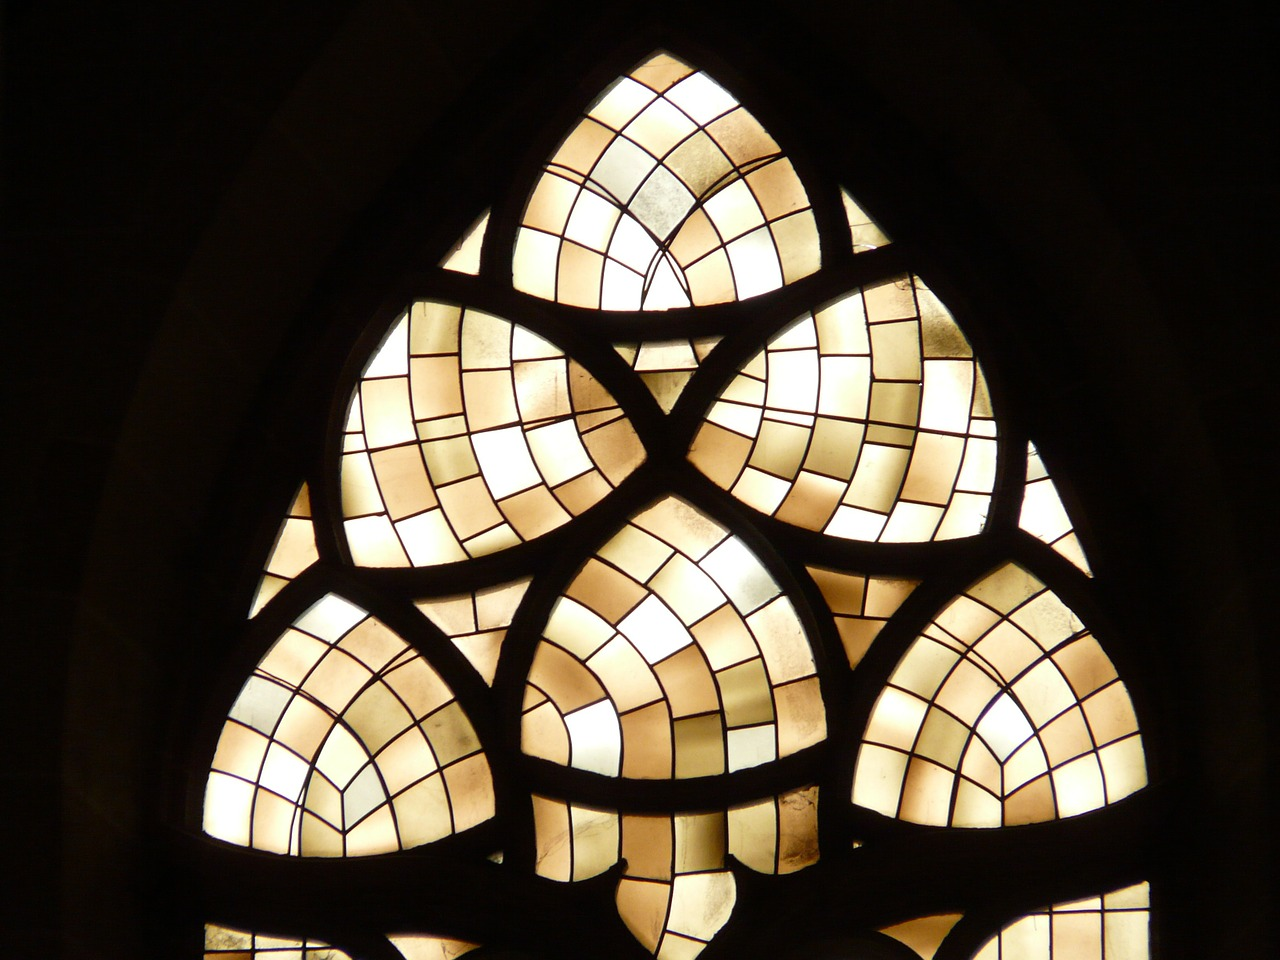 church window,glass window,abstract,grey,brown,trist,church,believe,holy,stained glass,ulm cathedral,münster,ulm,free pictures, free photos, free images, royalty free, free illustrations, public domain